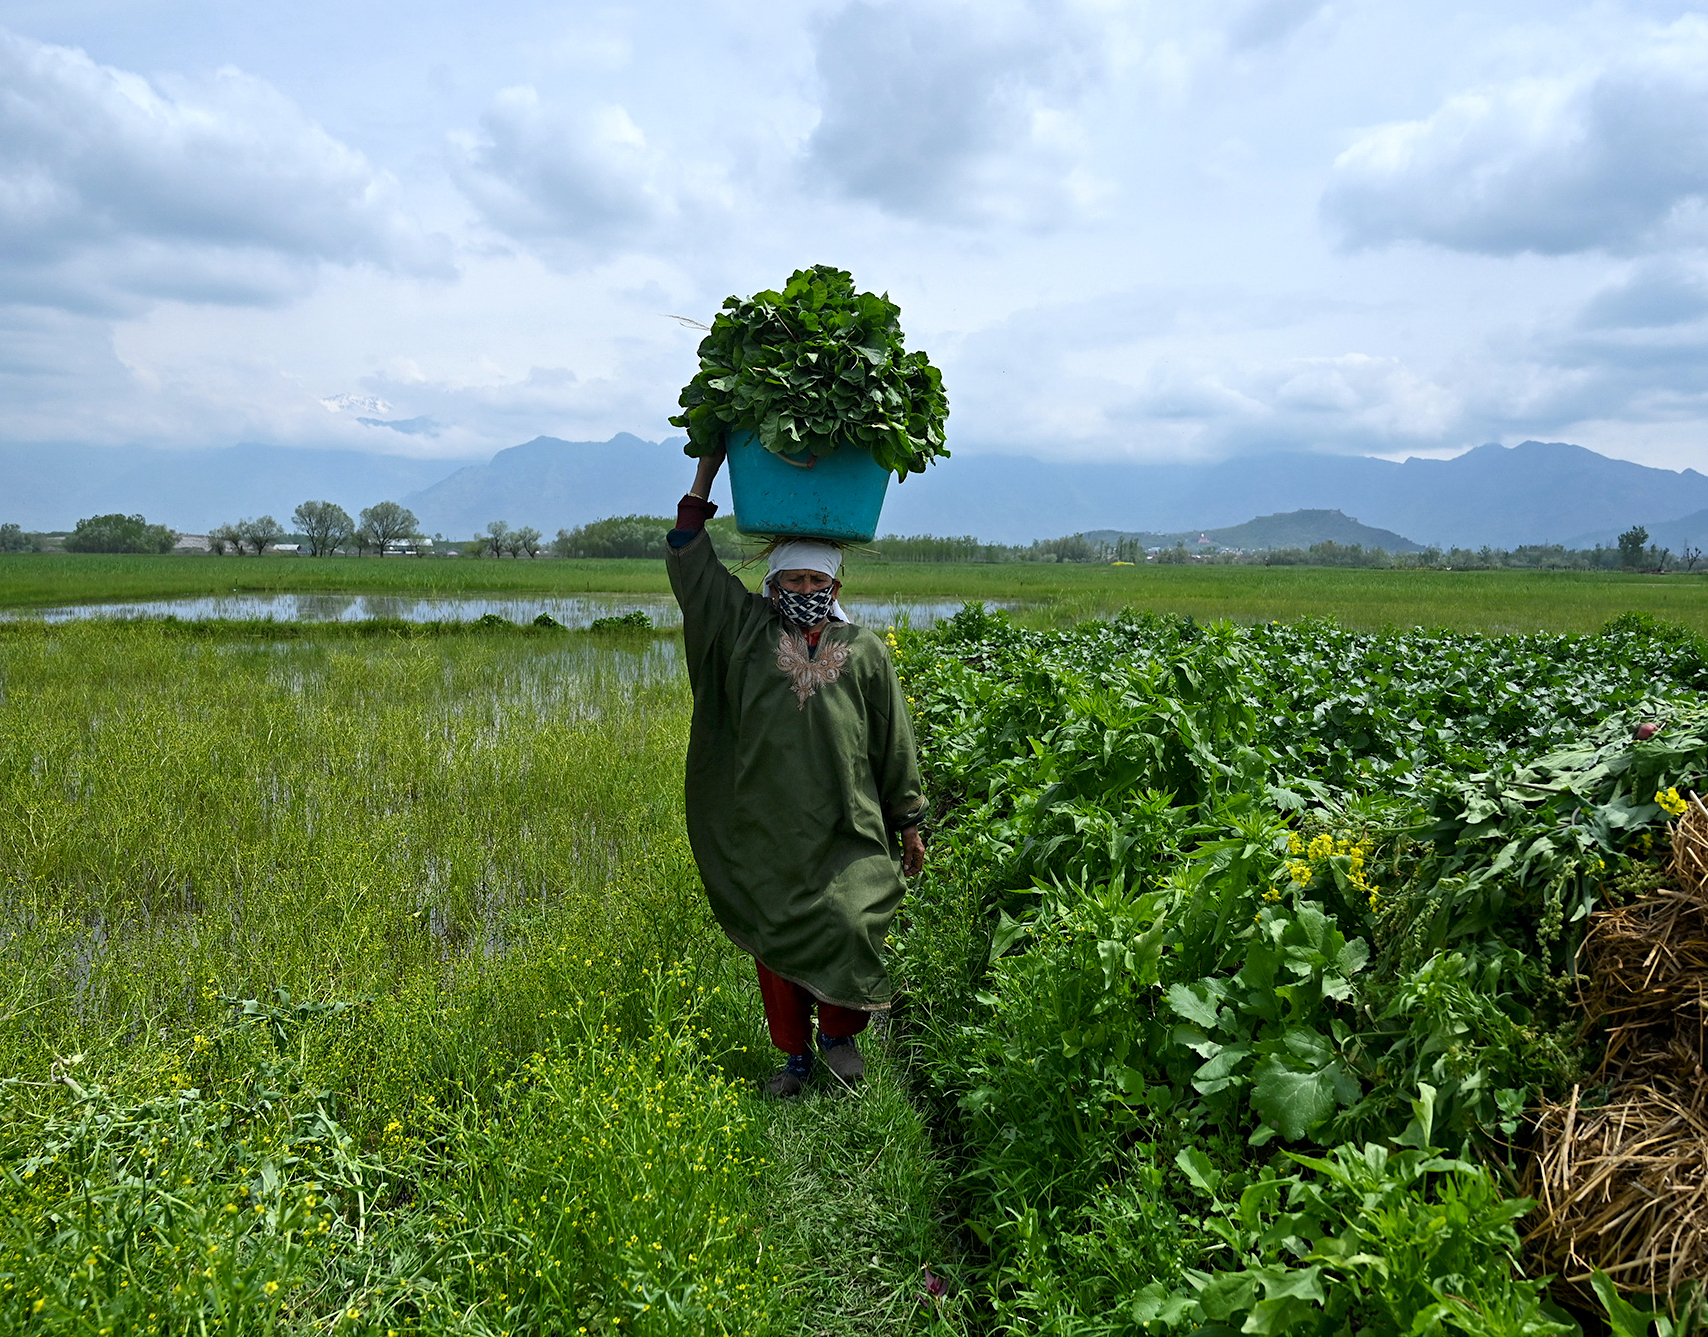 A woman carries a basket with vegetables recently harvested in Srinagar on April 20, 2020.   TAUSEEF MUSTAFA/AFP via Getty Images